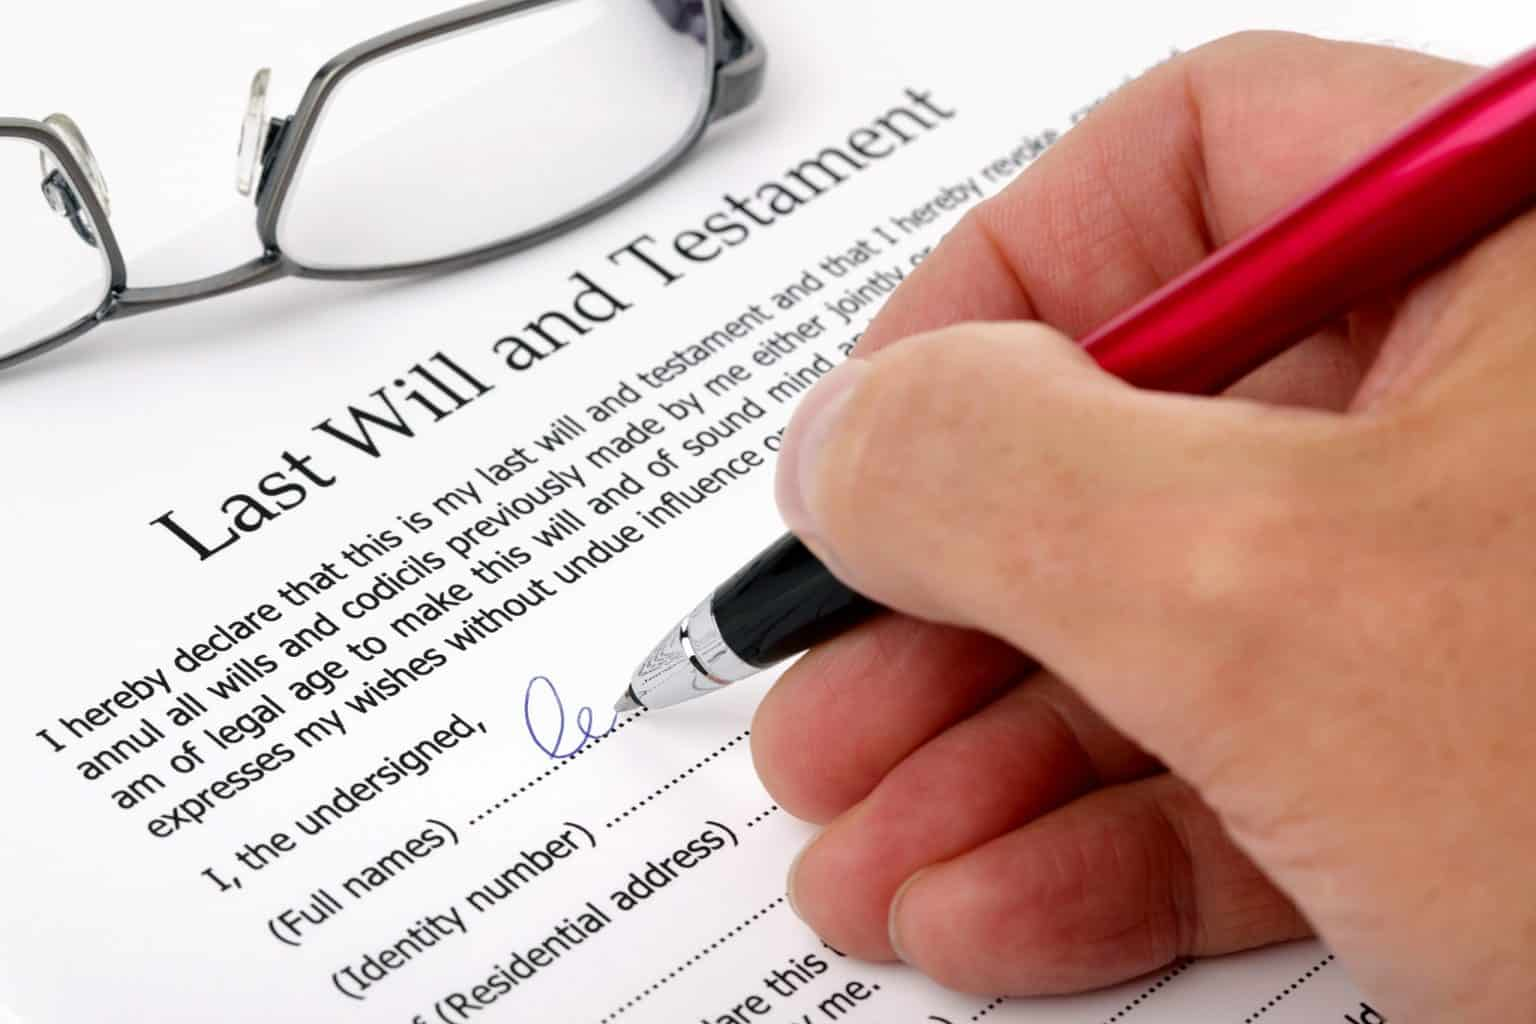 Signing of a Will as part of estate planning process